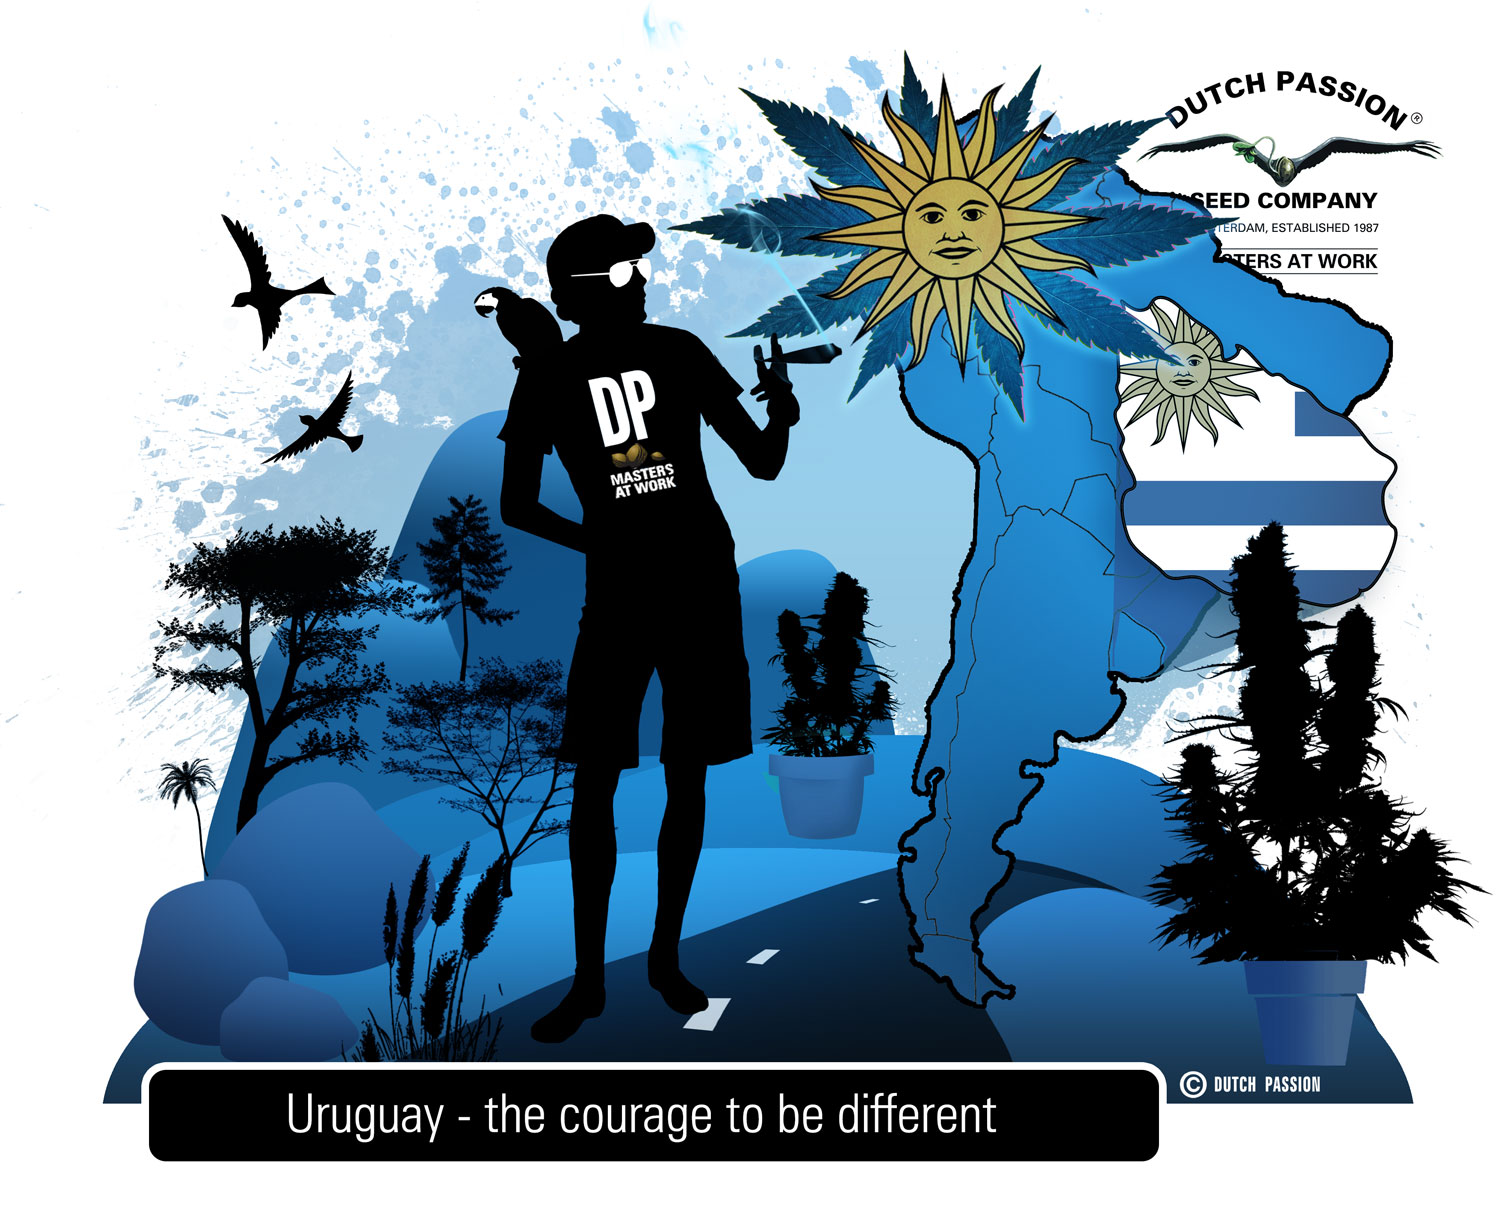 Uruguay.  The worldwide legalization of cannabis begins